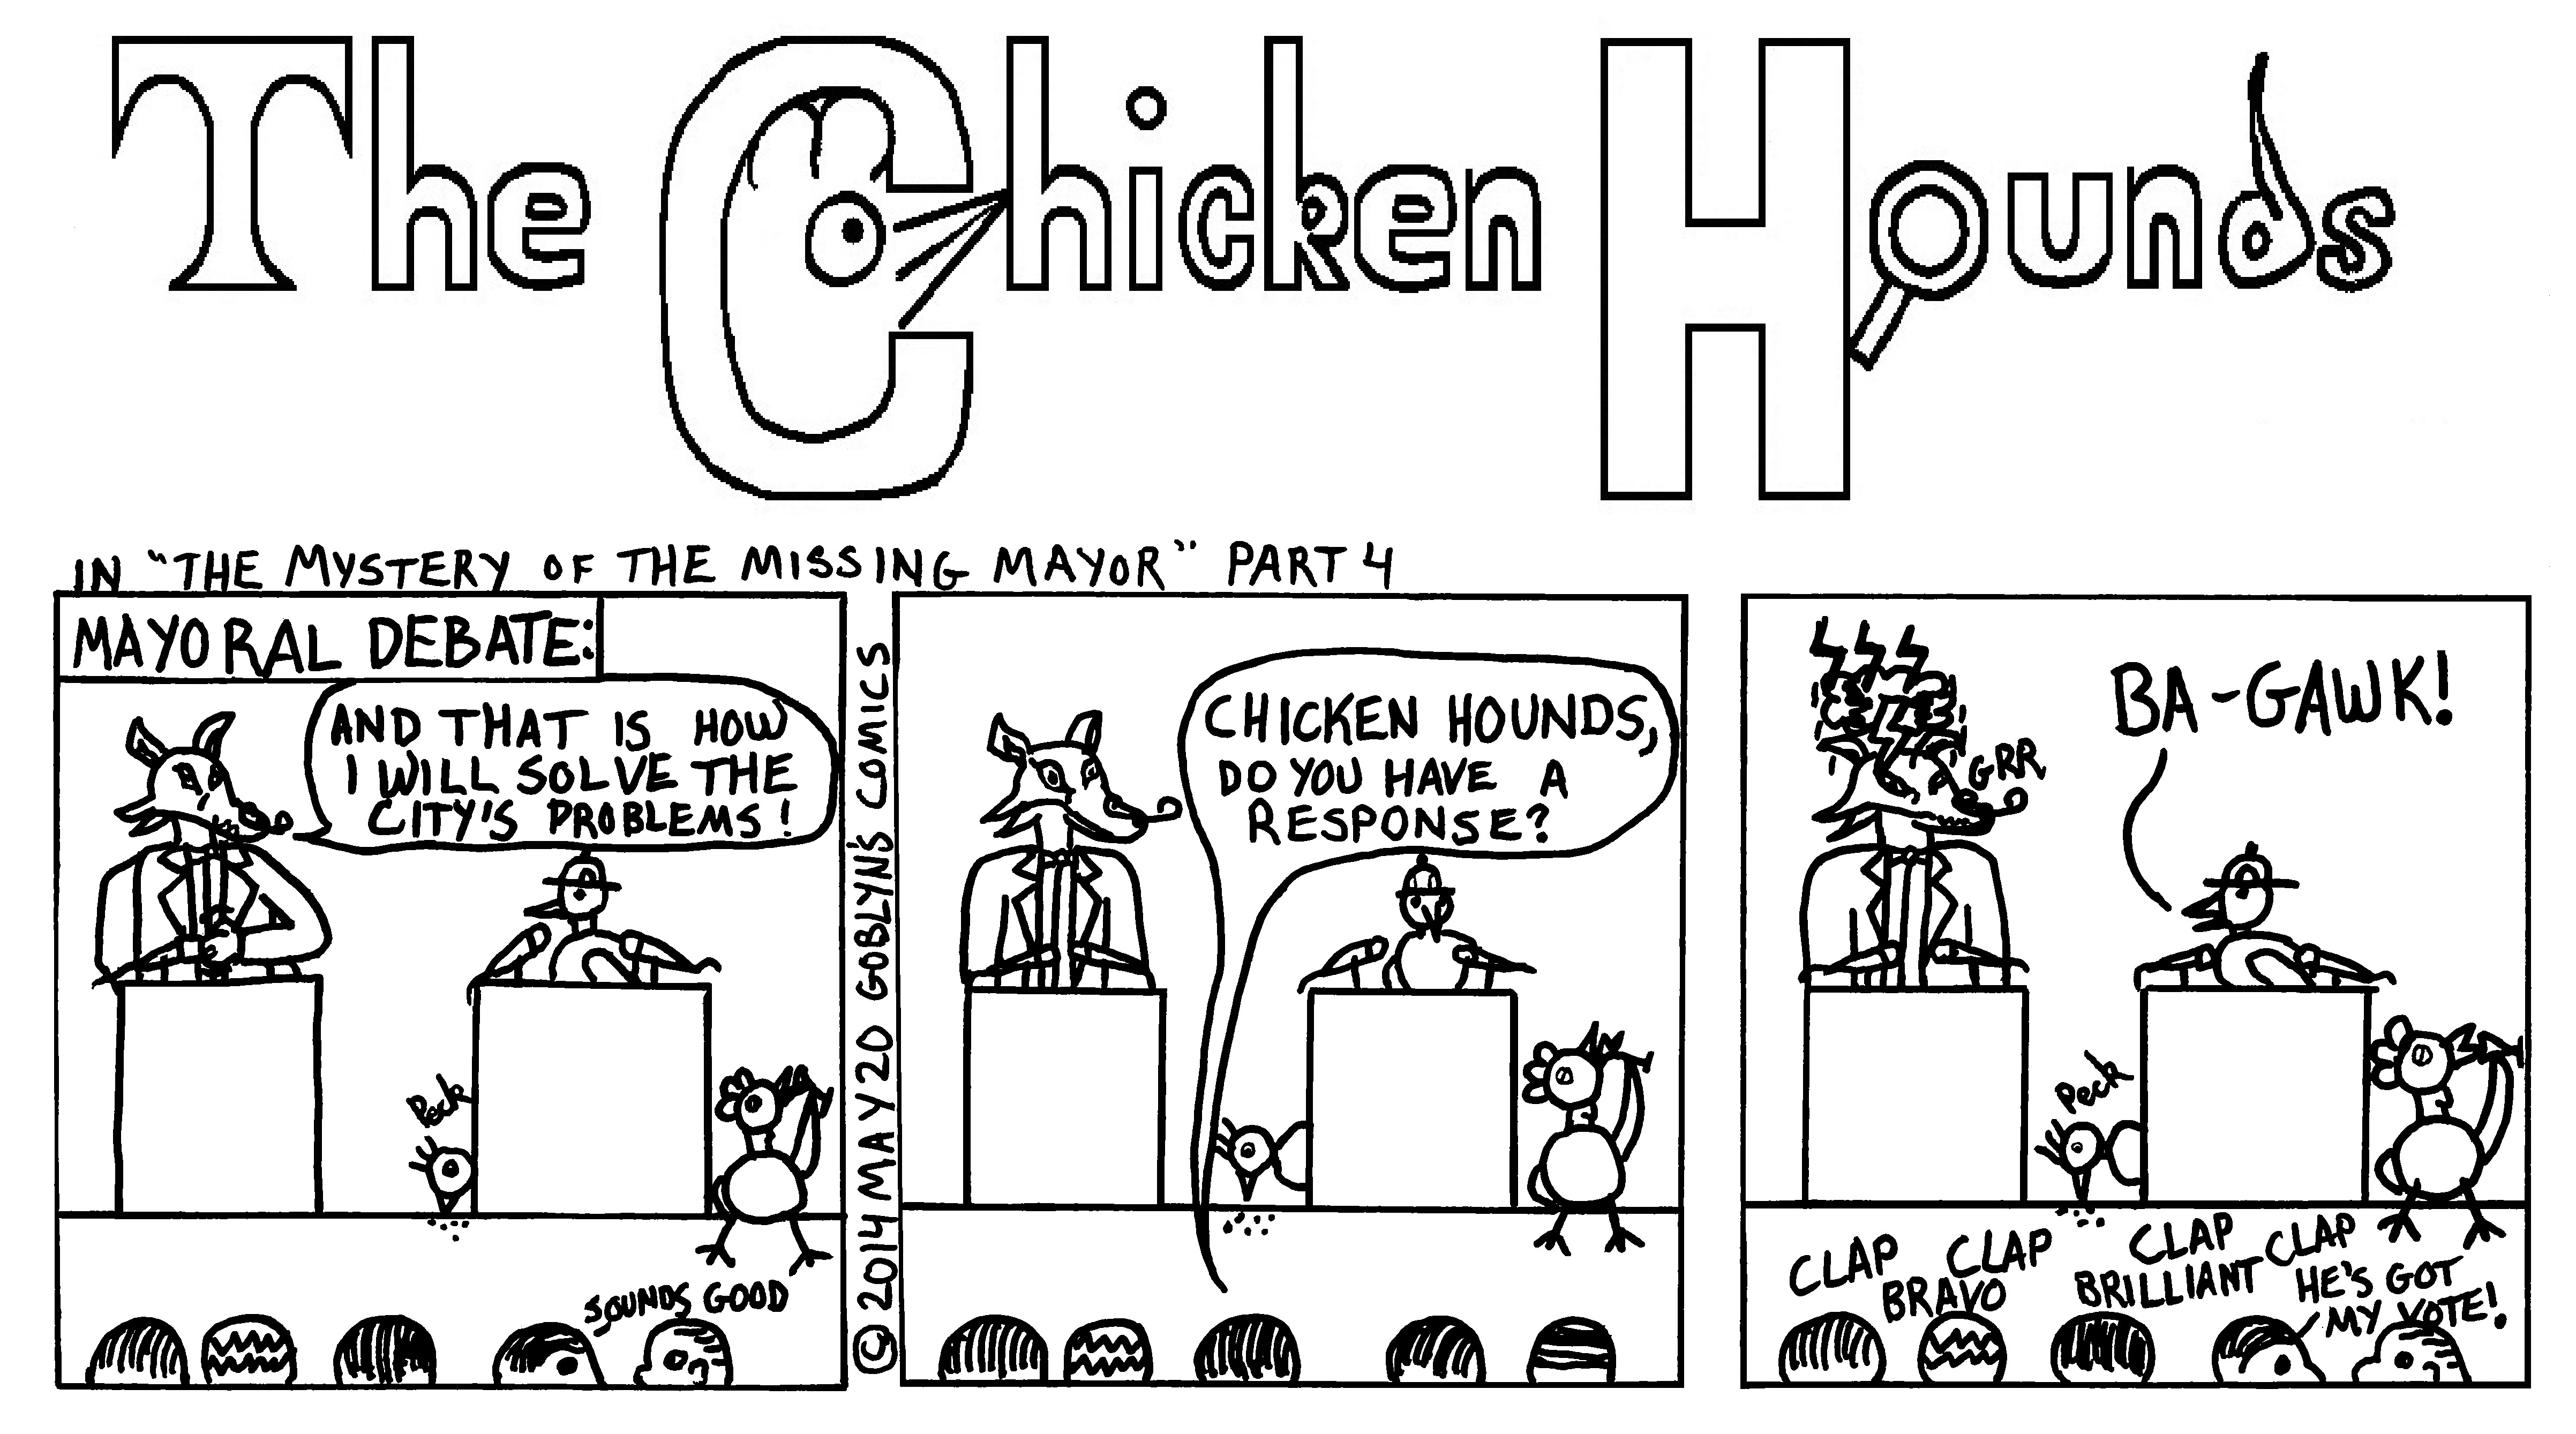 "The Chicken Hounds, San Francisco's Greatest Detectives, in ""The Mystery of the Missing Mayor"" Part 4. The Chicken Hounds plan for San Francisco: Ba-Gawk!"